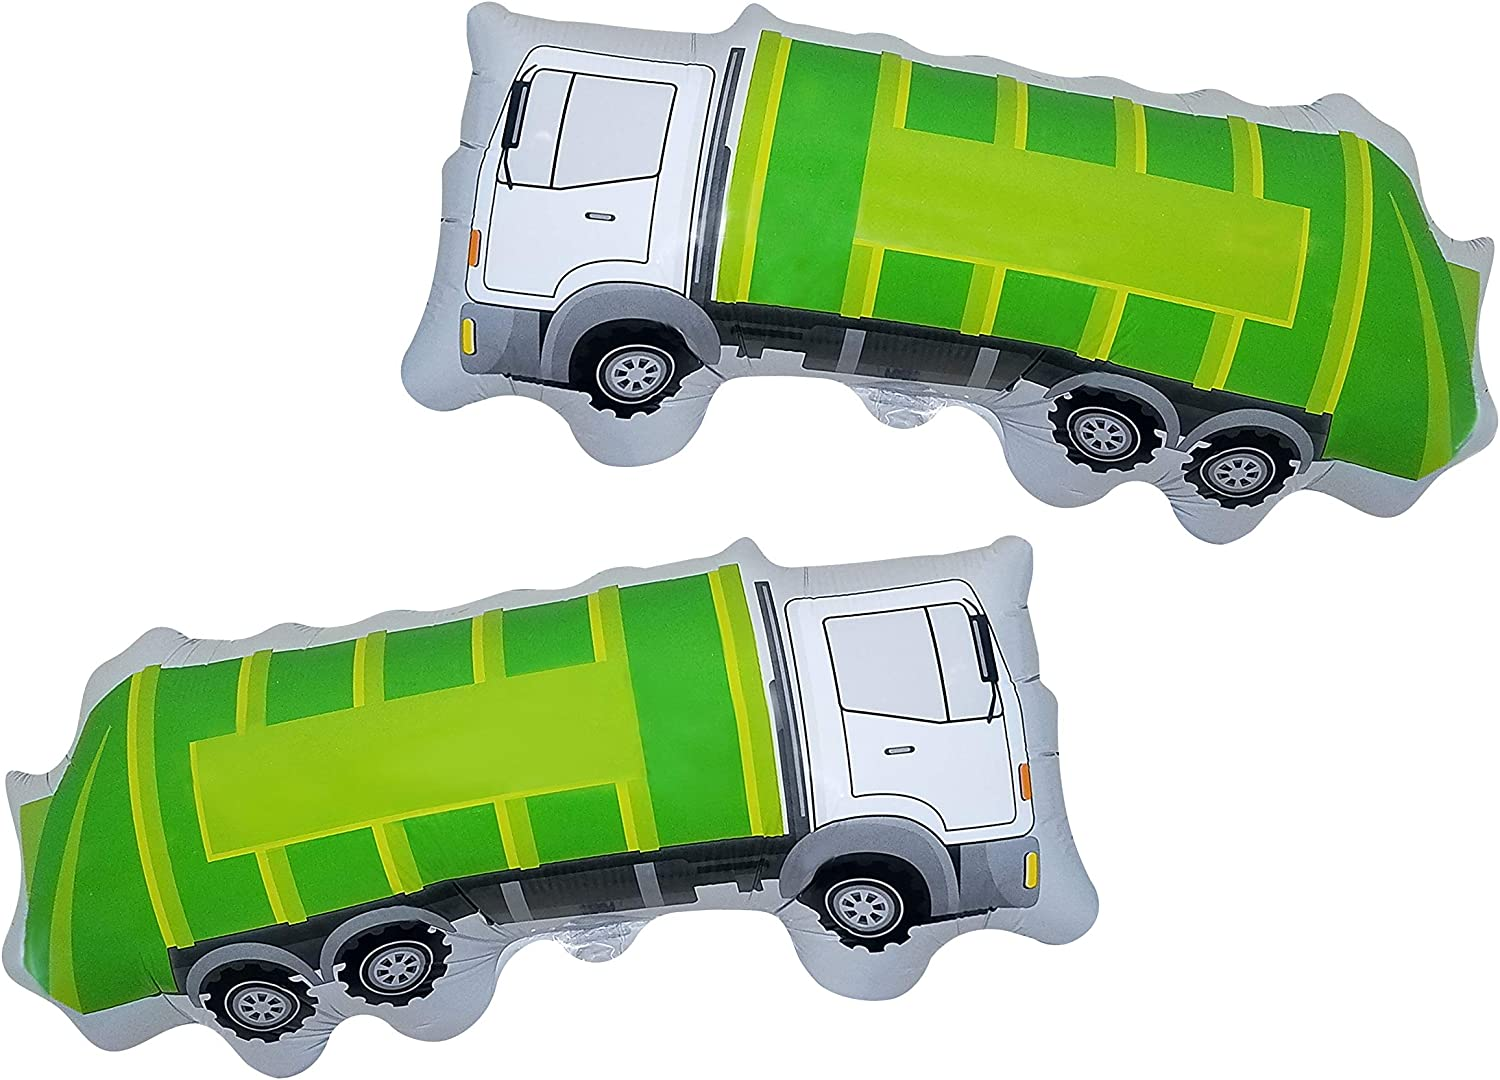 Garbage Truck Balloon - 2 Large Trash Truck Foil Balloons - Garbage Truck Birthday Party Supplies - Perfect for Birthday Parties, Events, Decoration, or a Truck Party - Ribbon Included